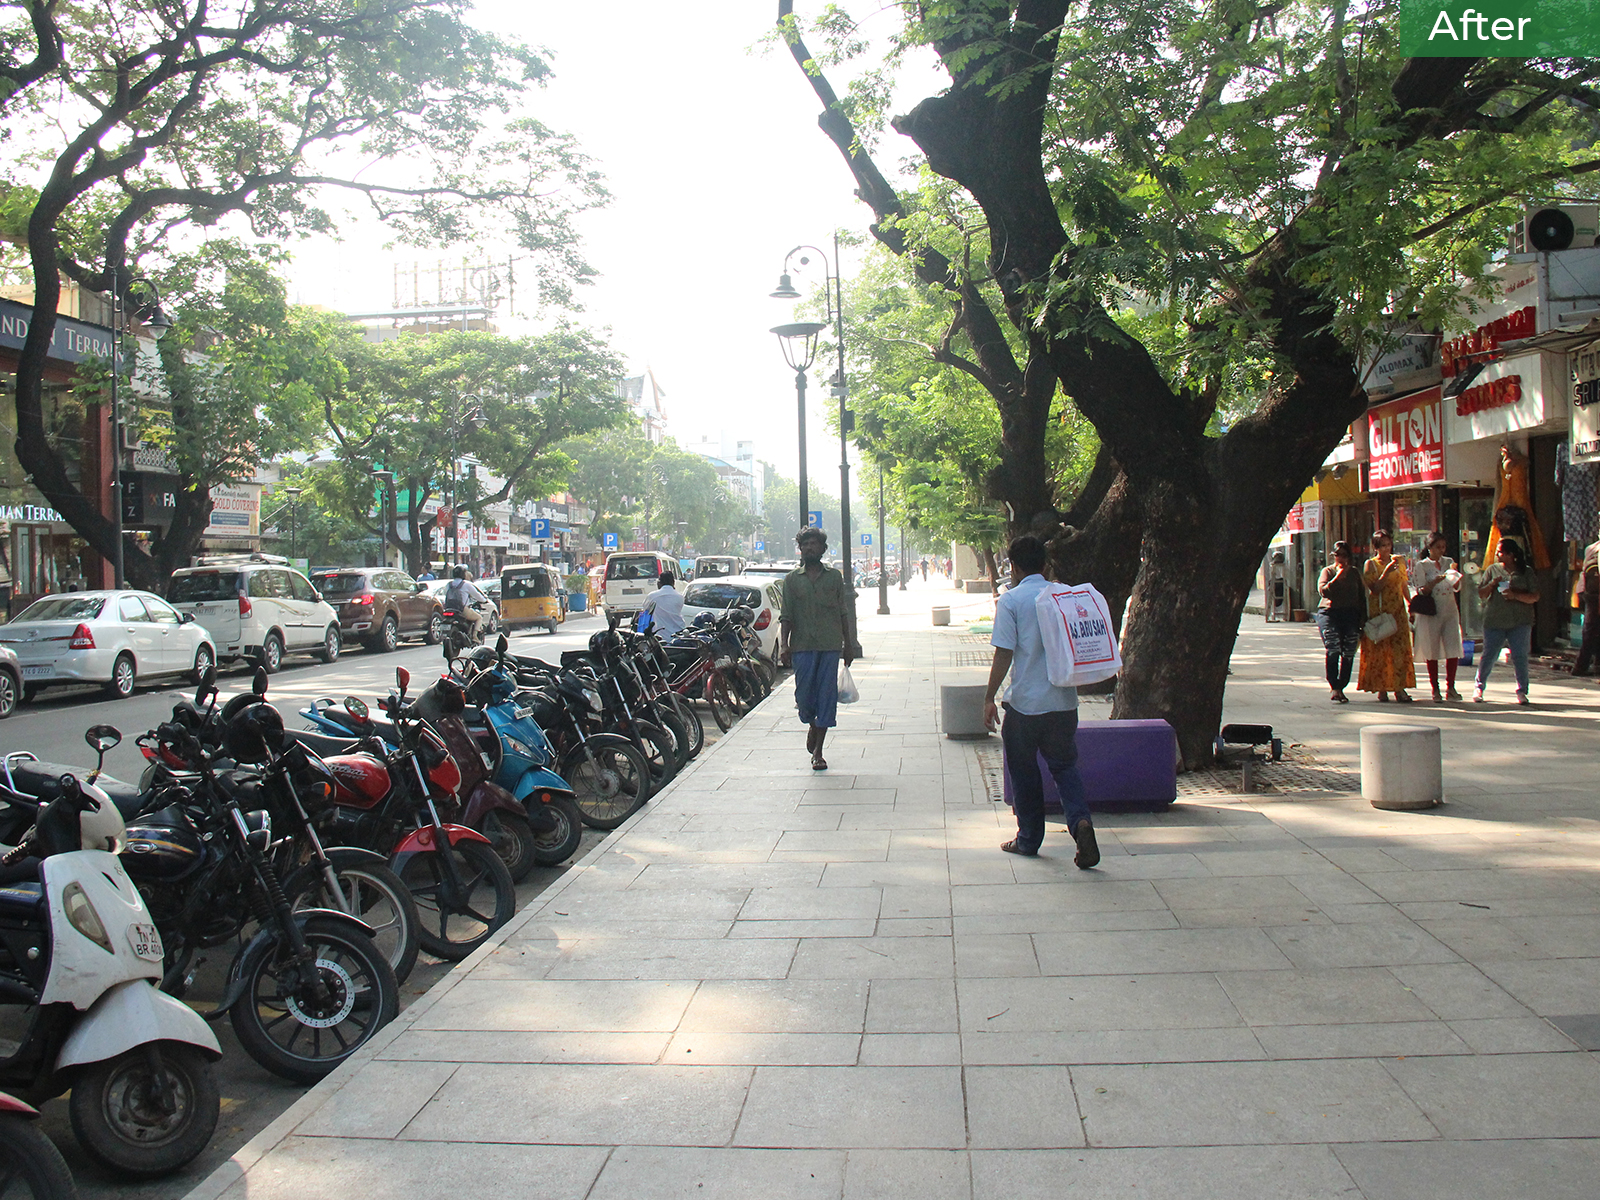 After-Organised Parking